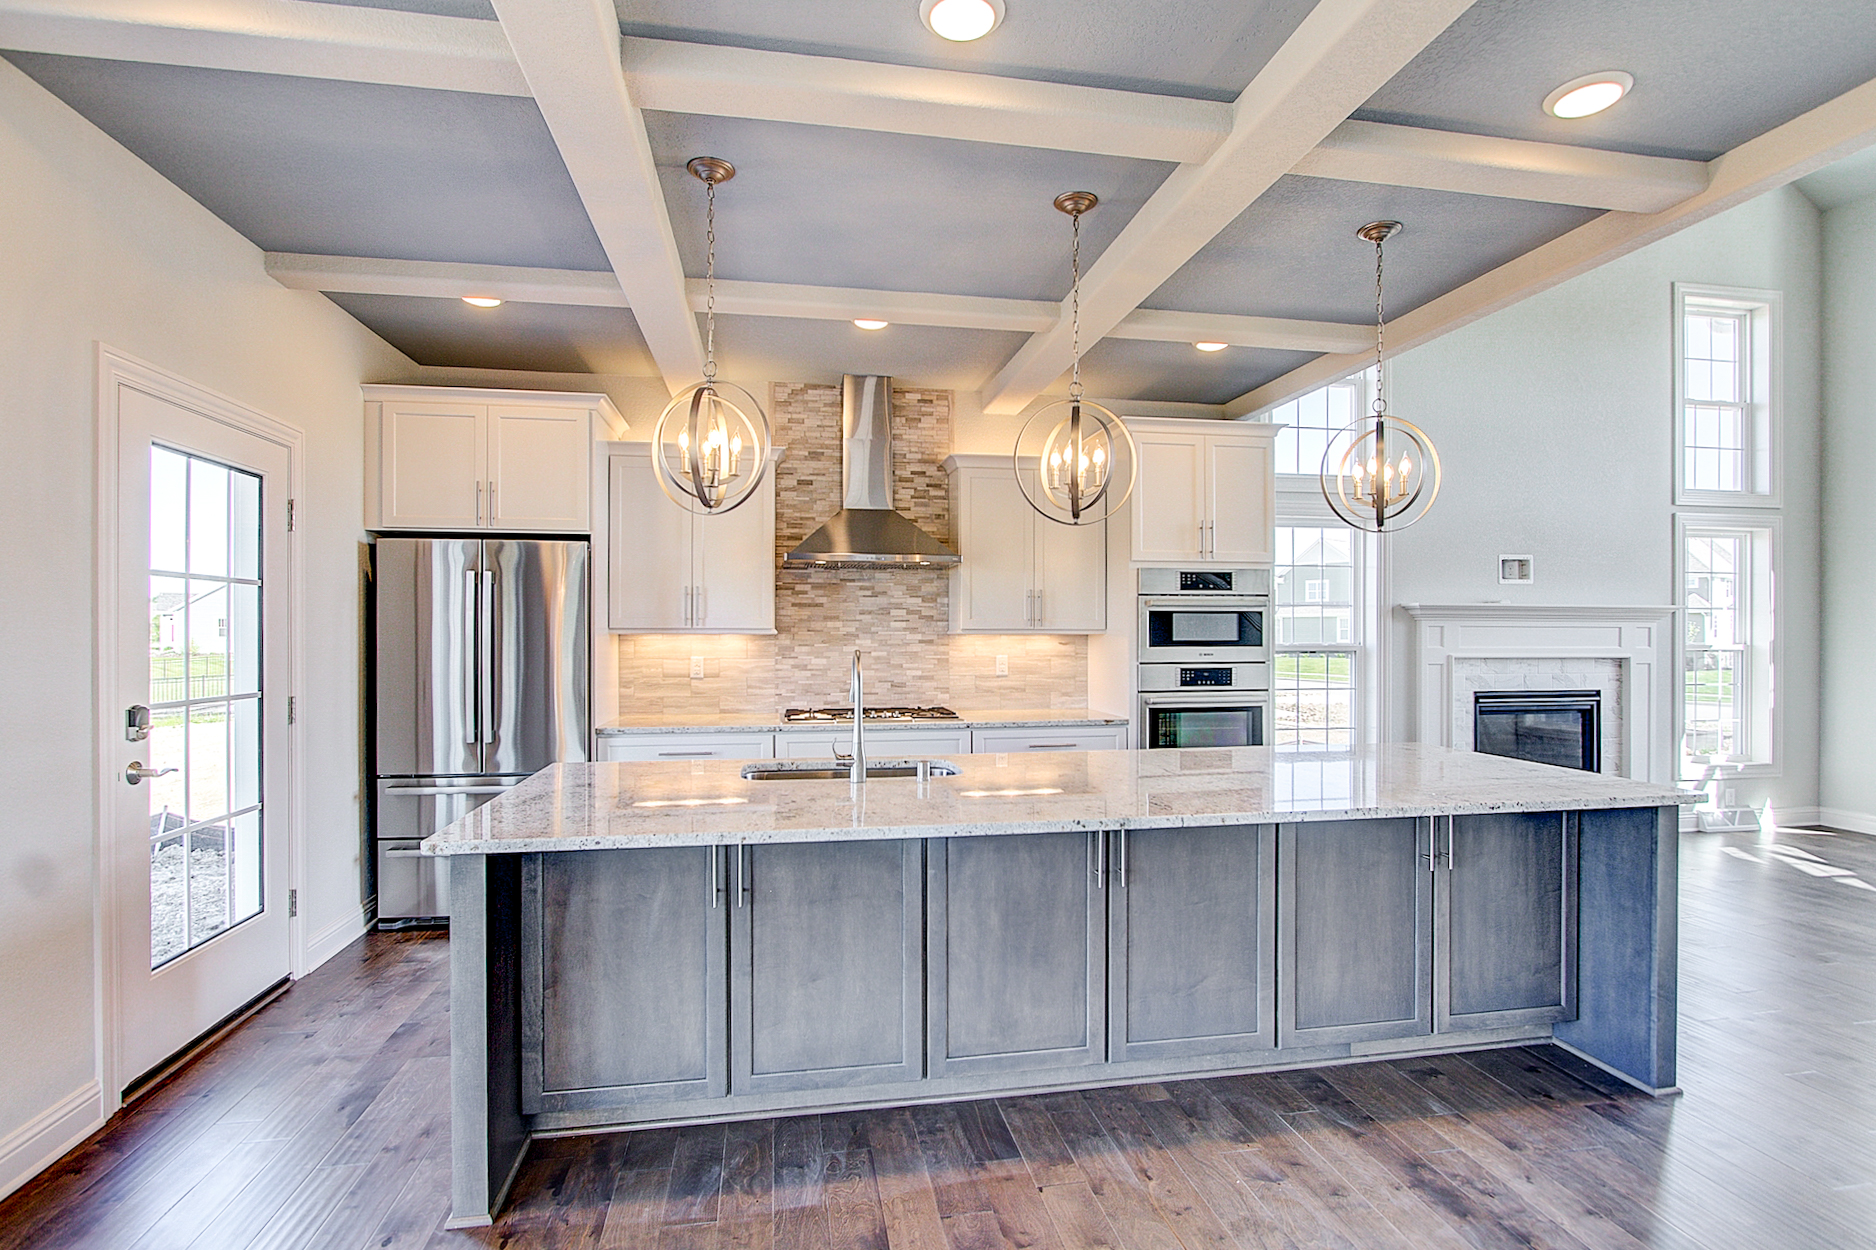 Kitchen Island with Clear Views into Great Room